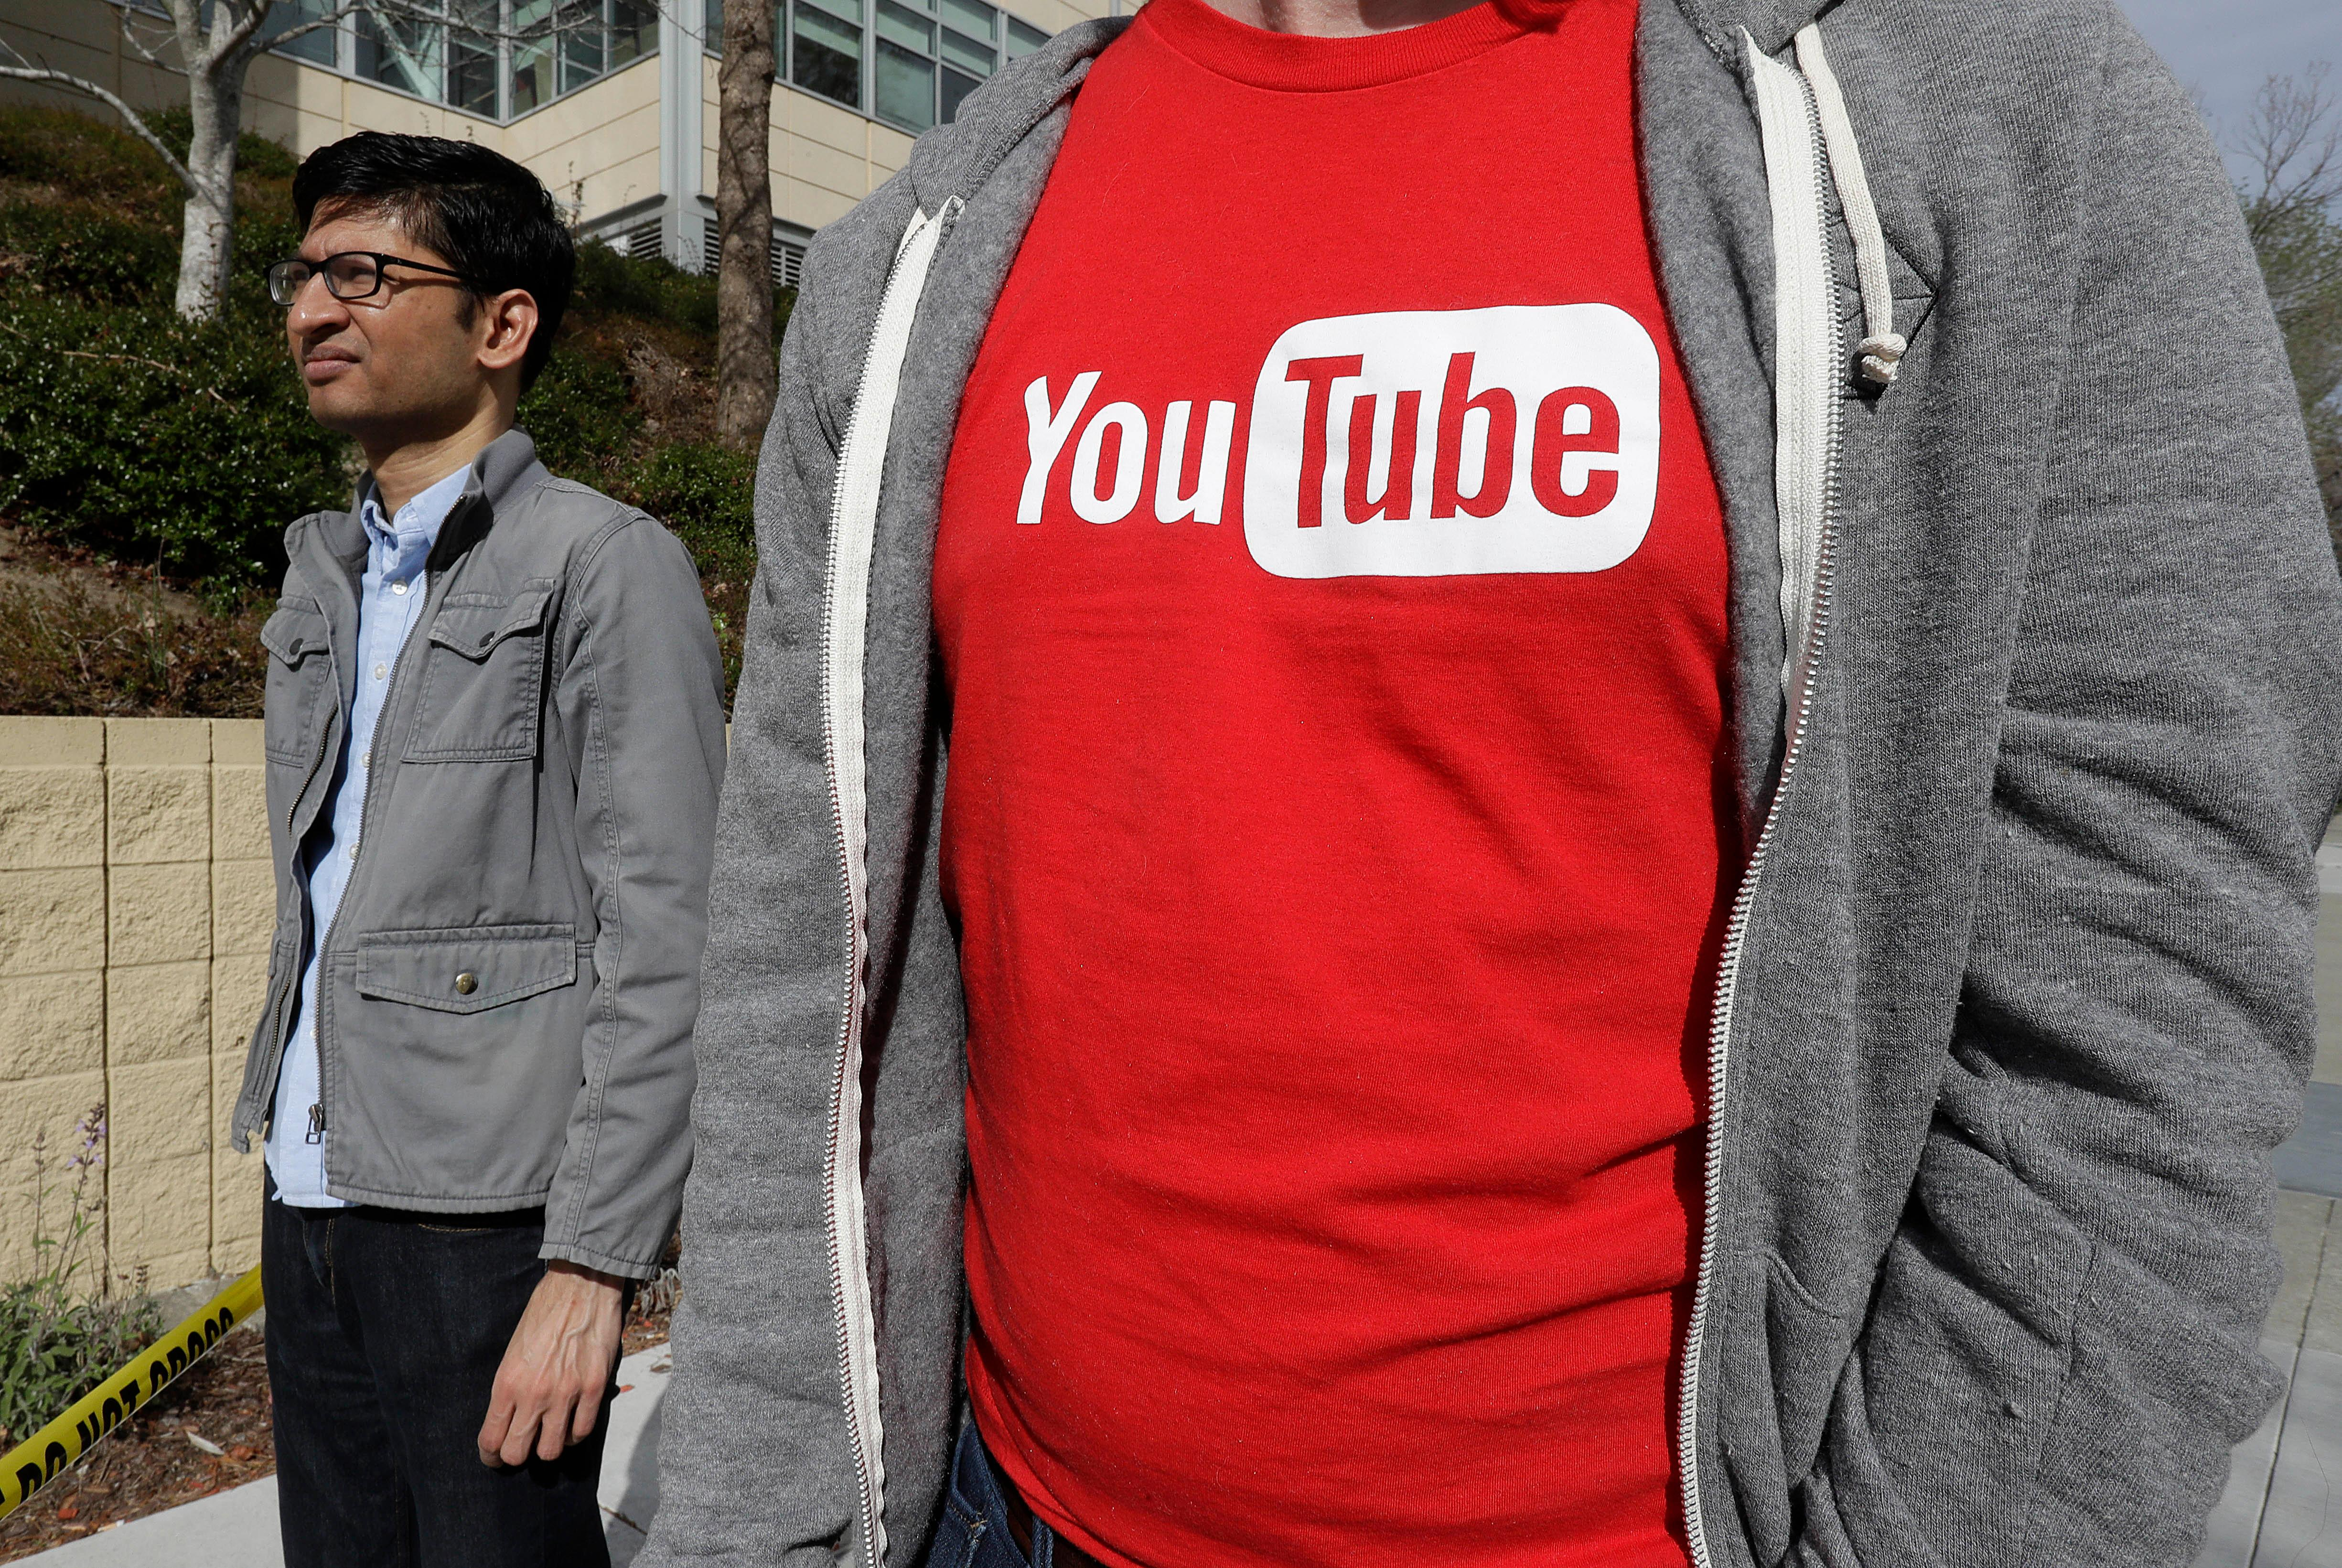 People wait to be escorted into a YouTube office building in San Bruno, Calif., Wednesday, April 4, 2018. A woman suspected of shooting three people at YouTube headquarters before killing herself was furious with the company because it had stopped paying her for videos she posted on the platform, her father said Tuesday, April 3, 2018. (AP Photo/Jeff Chiu)